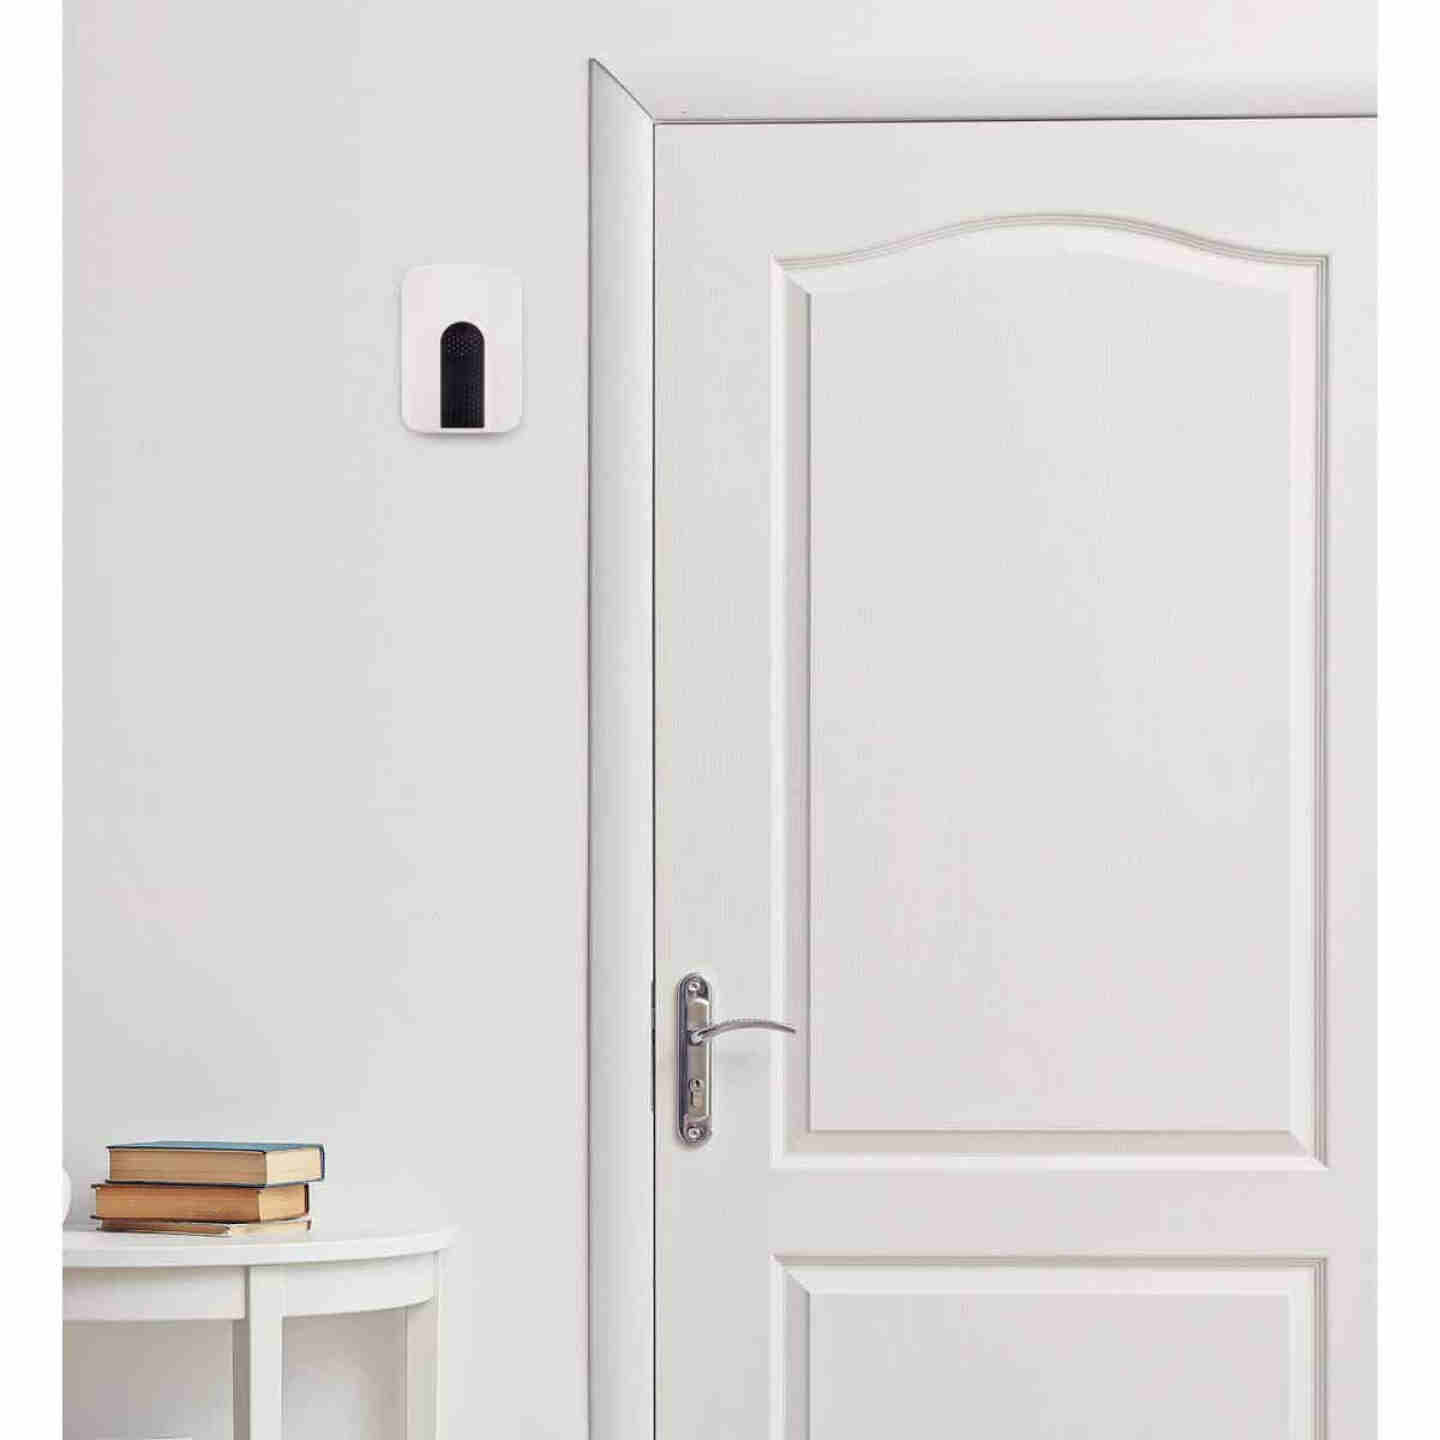 Heath Zenith Battery Operated White with Black accent Wireless Door Chime Image 2